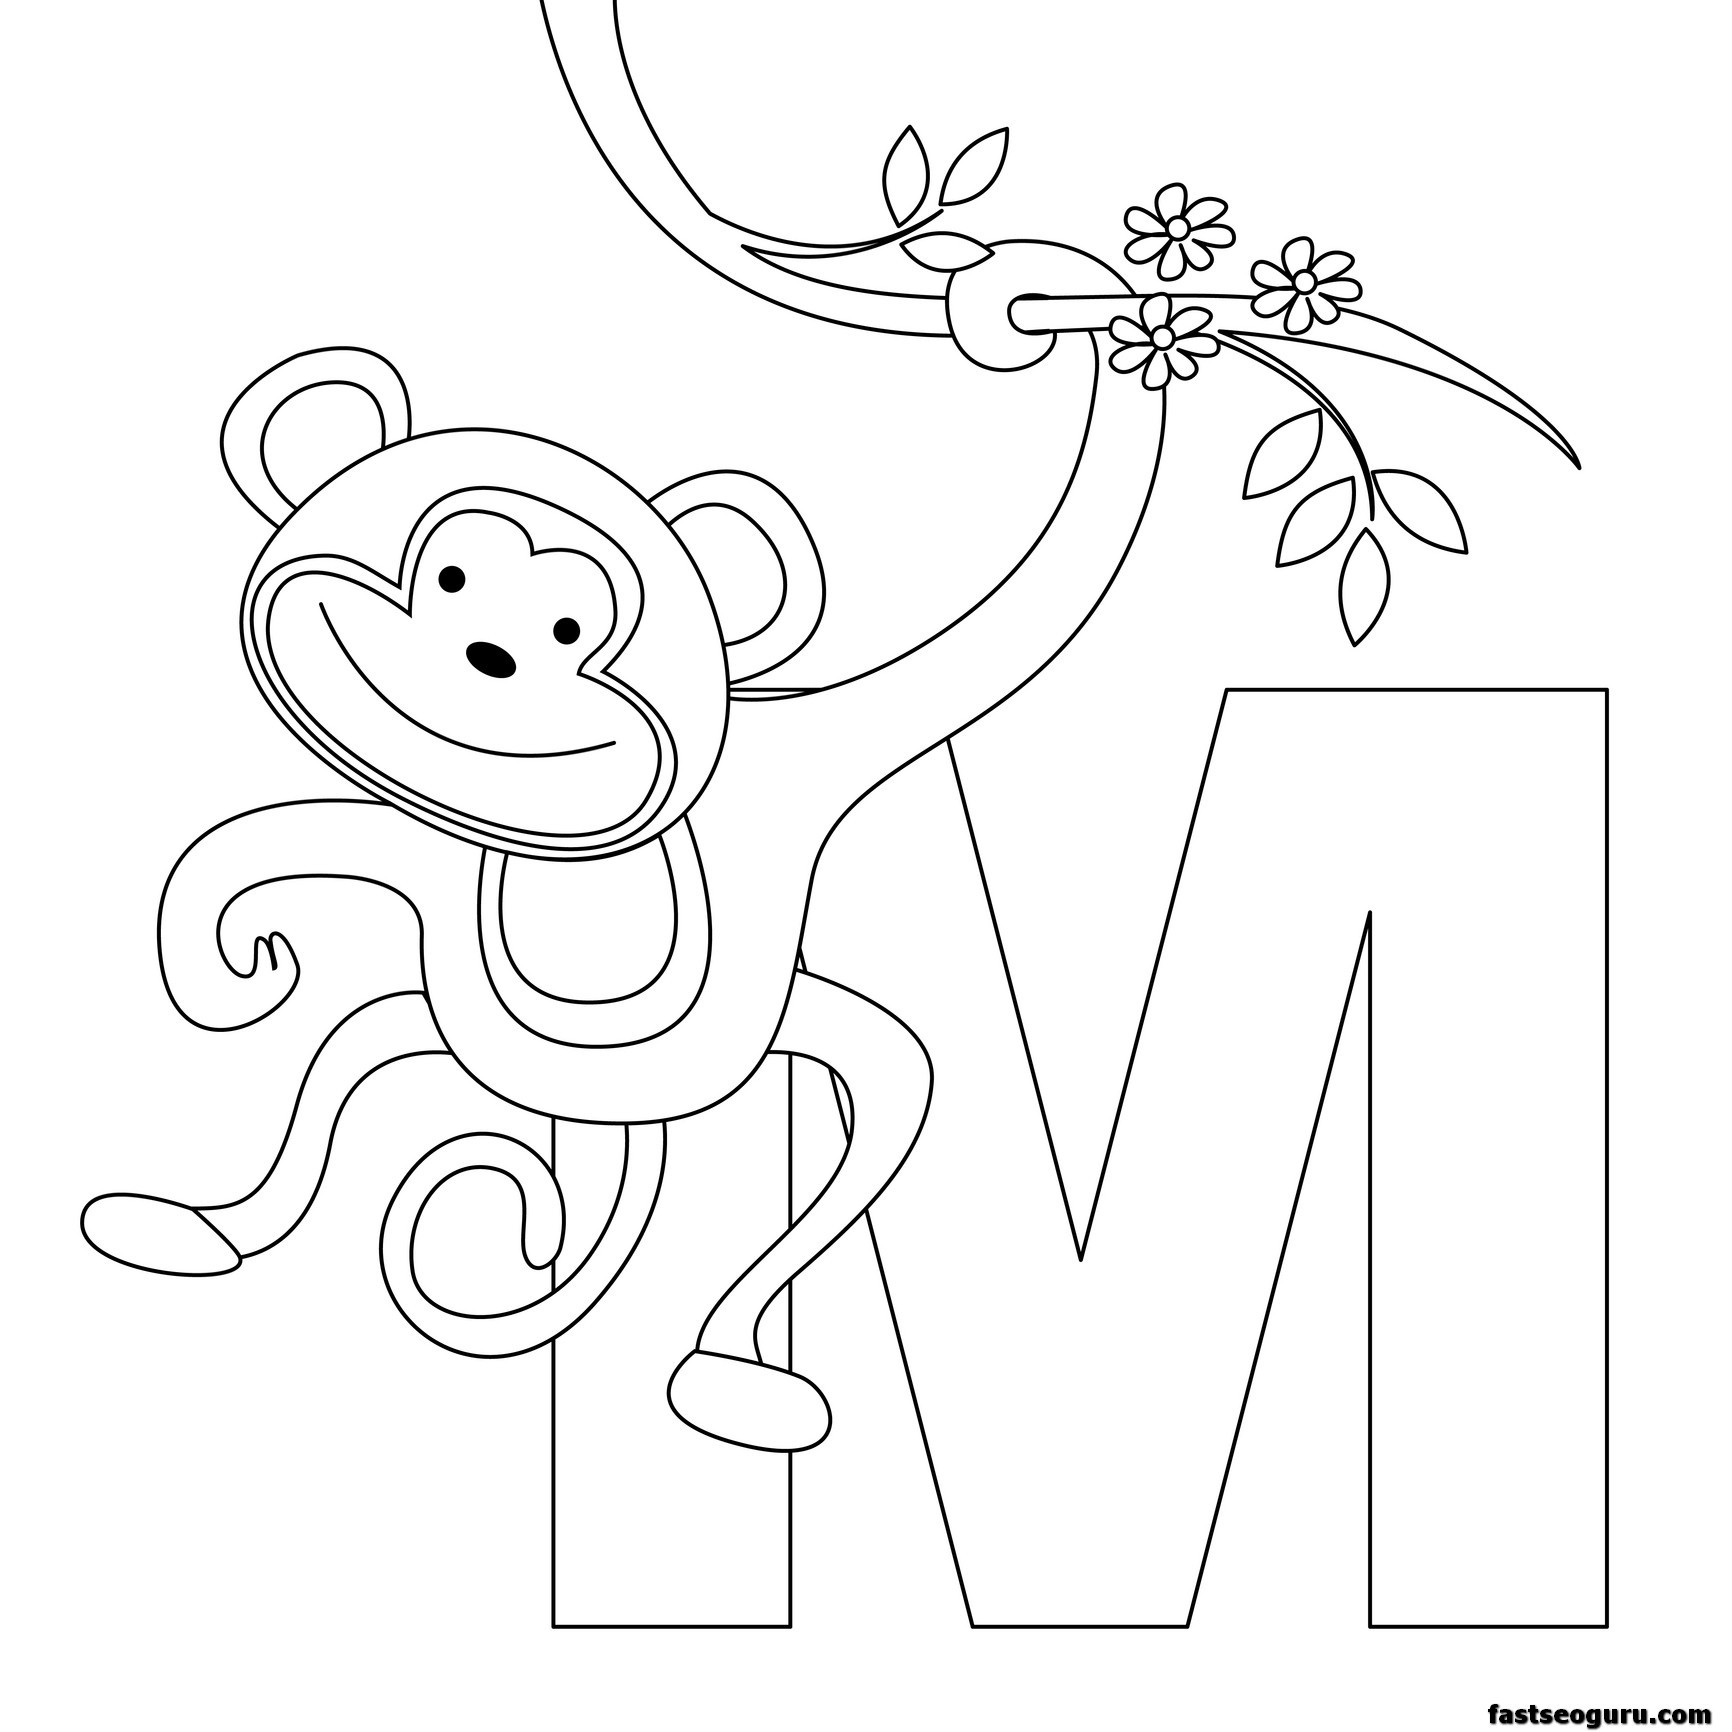 Printable animal alphabet worksheets letter m for monkey for Animal alphabet coloring pages free